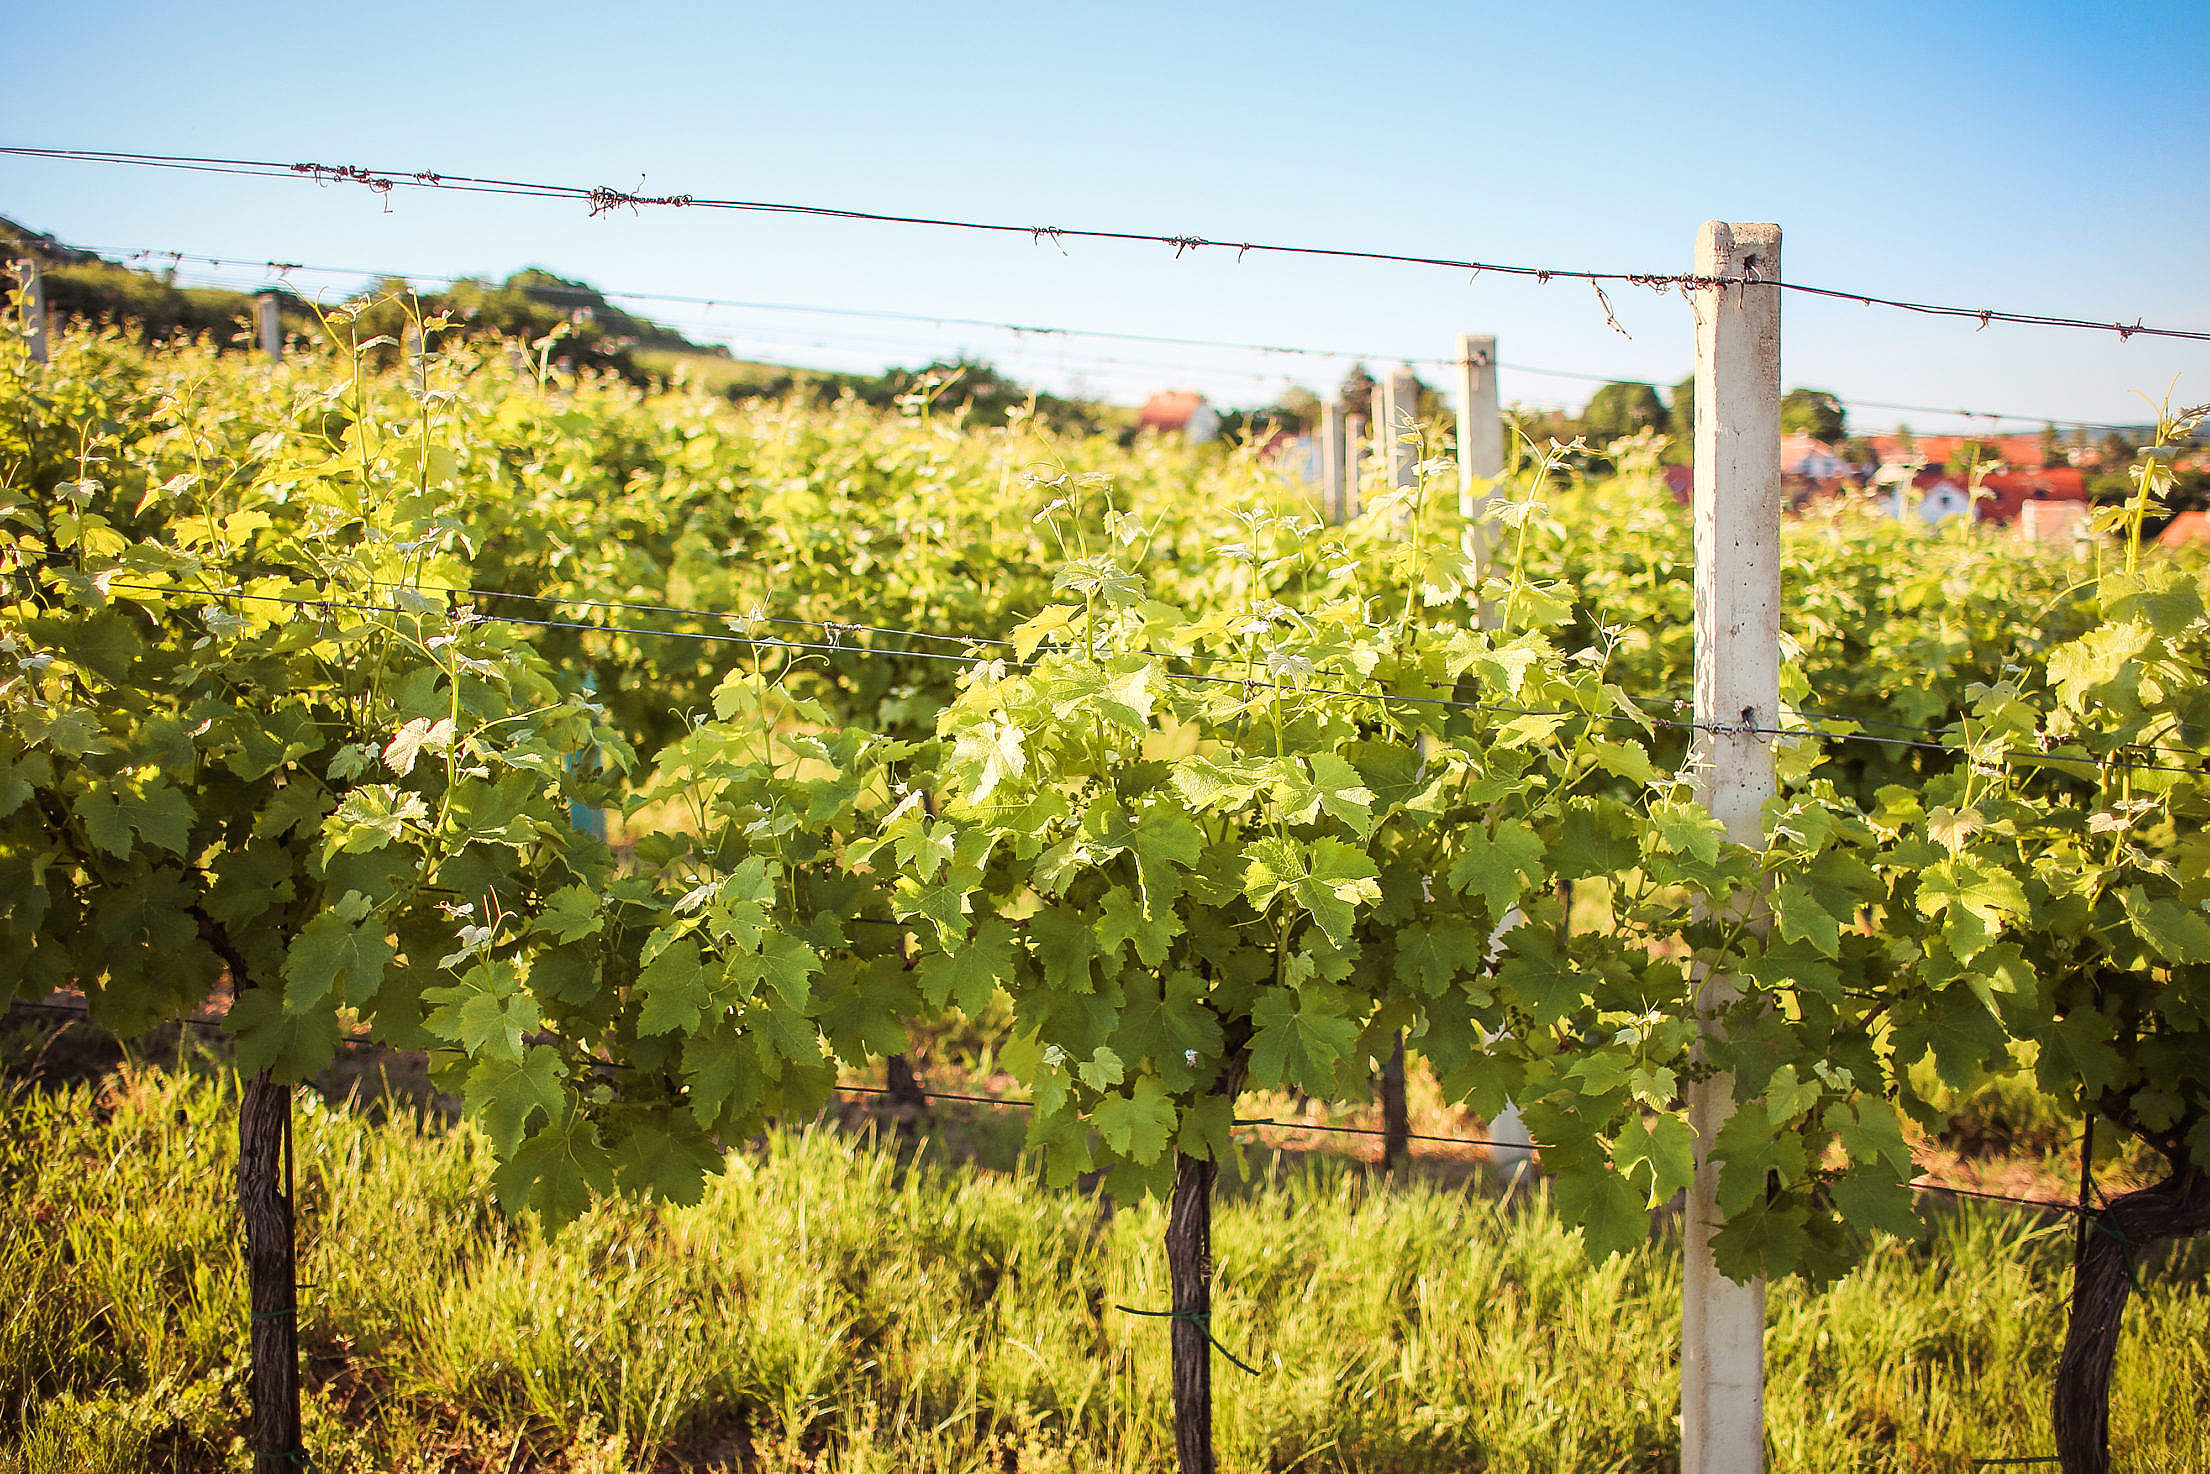 Rows of Young Grape Vines Free Stock Photo